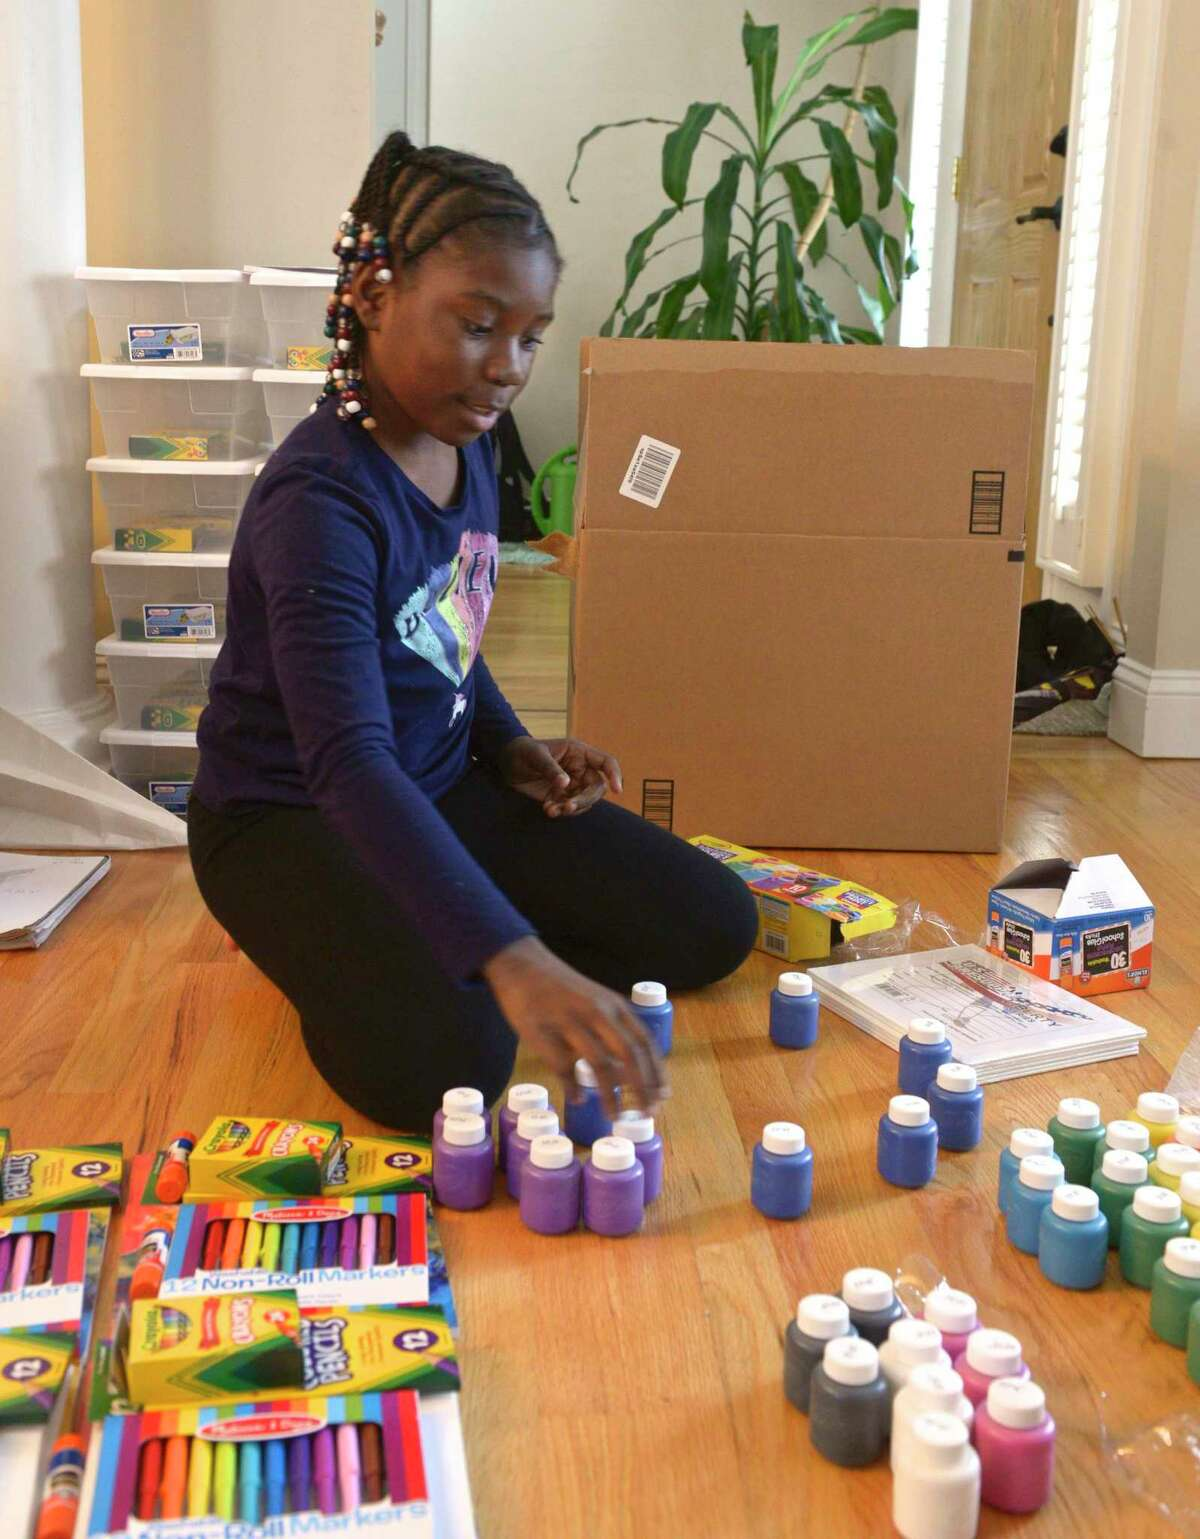 Chelsea Phaire, 10, of Danbury, sorts art supplies for charity she has started where she gives art kits to children in shelters and those affected by mass shooting. She went to El Paso, Texas, in October, to hand out 130 art kits to elementary school students in the wake of a mass shooting in that city. Tuesday, November 19, 2019, Danbury, Conn.